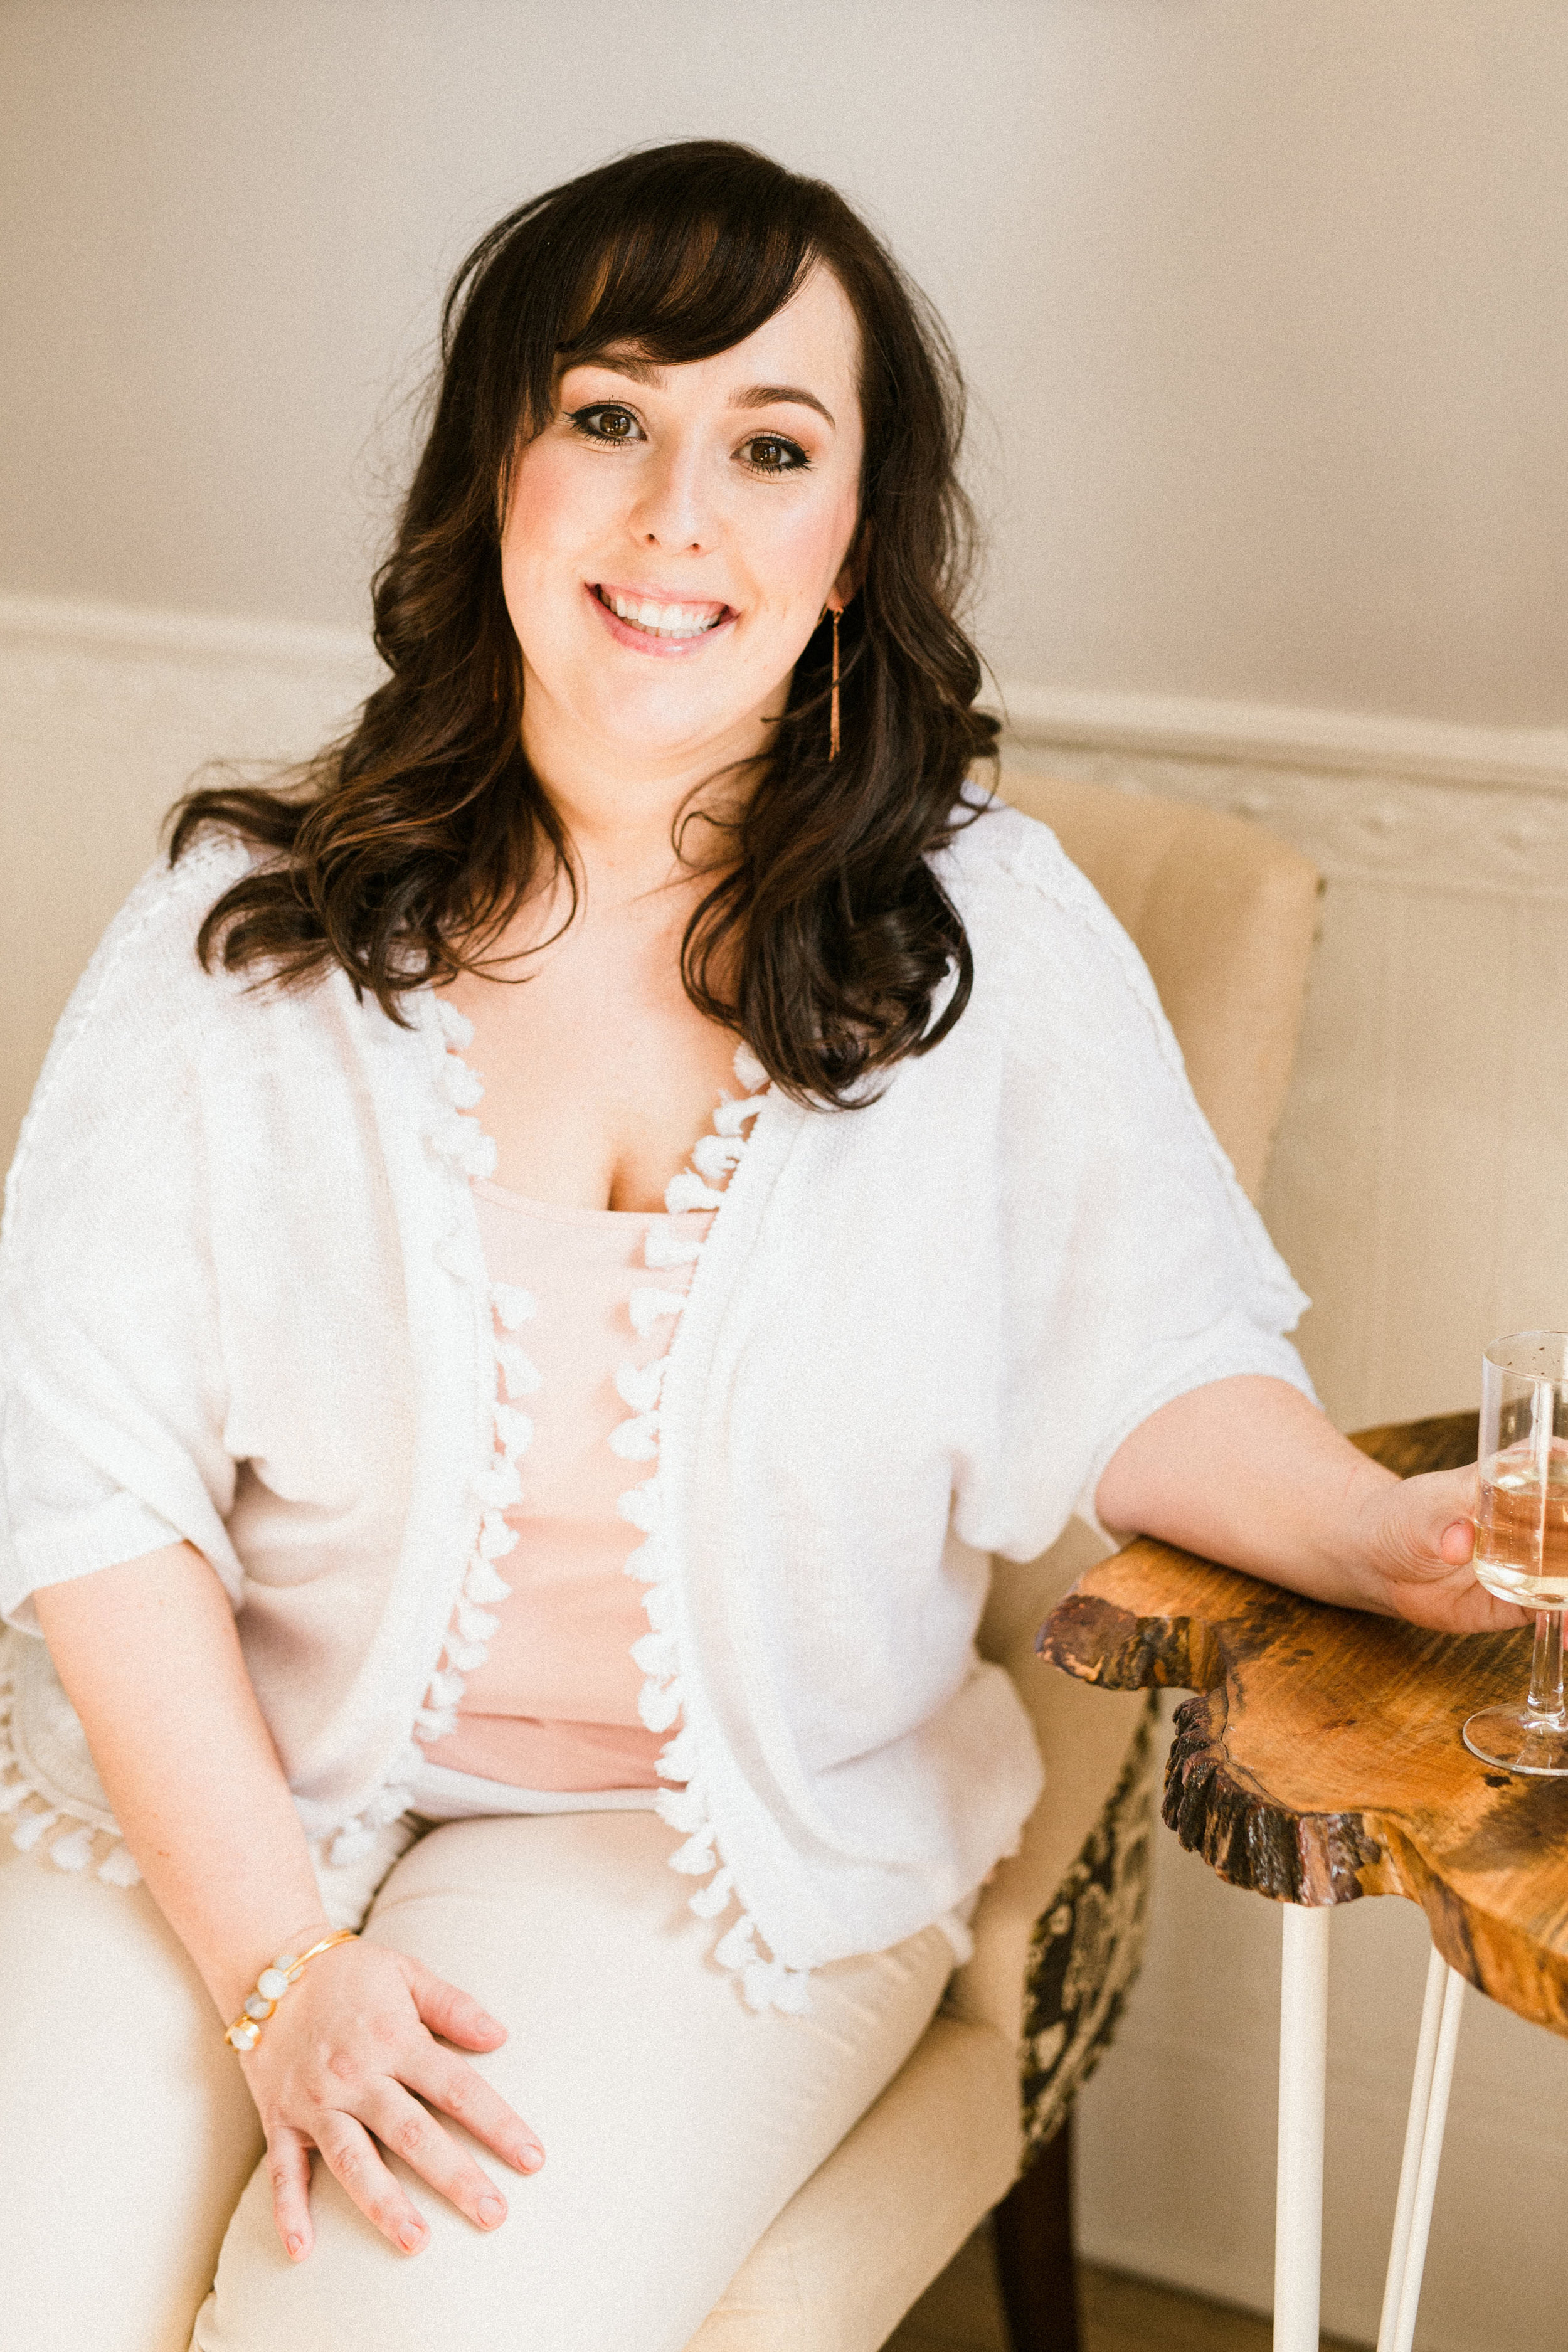 Melissa Kress - Event PlannerIt was the details that mattered most for Melissa Kress when gearing up for her 2015 wedding. In Melanie, she found her day-of event coordinator and also a friend.